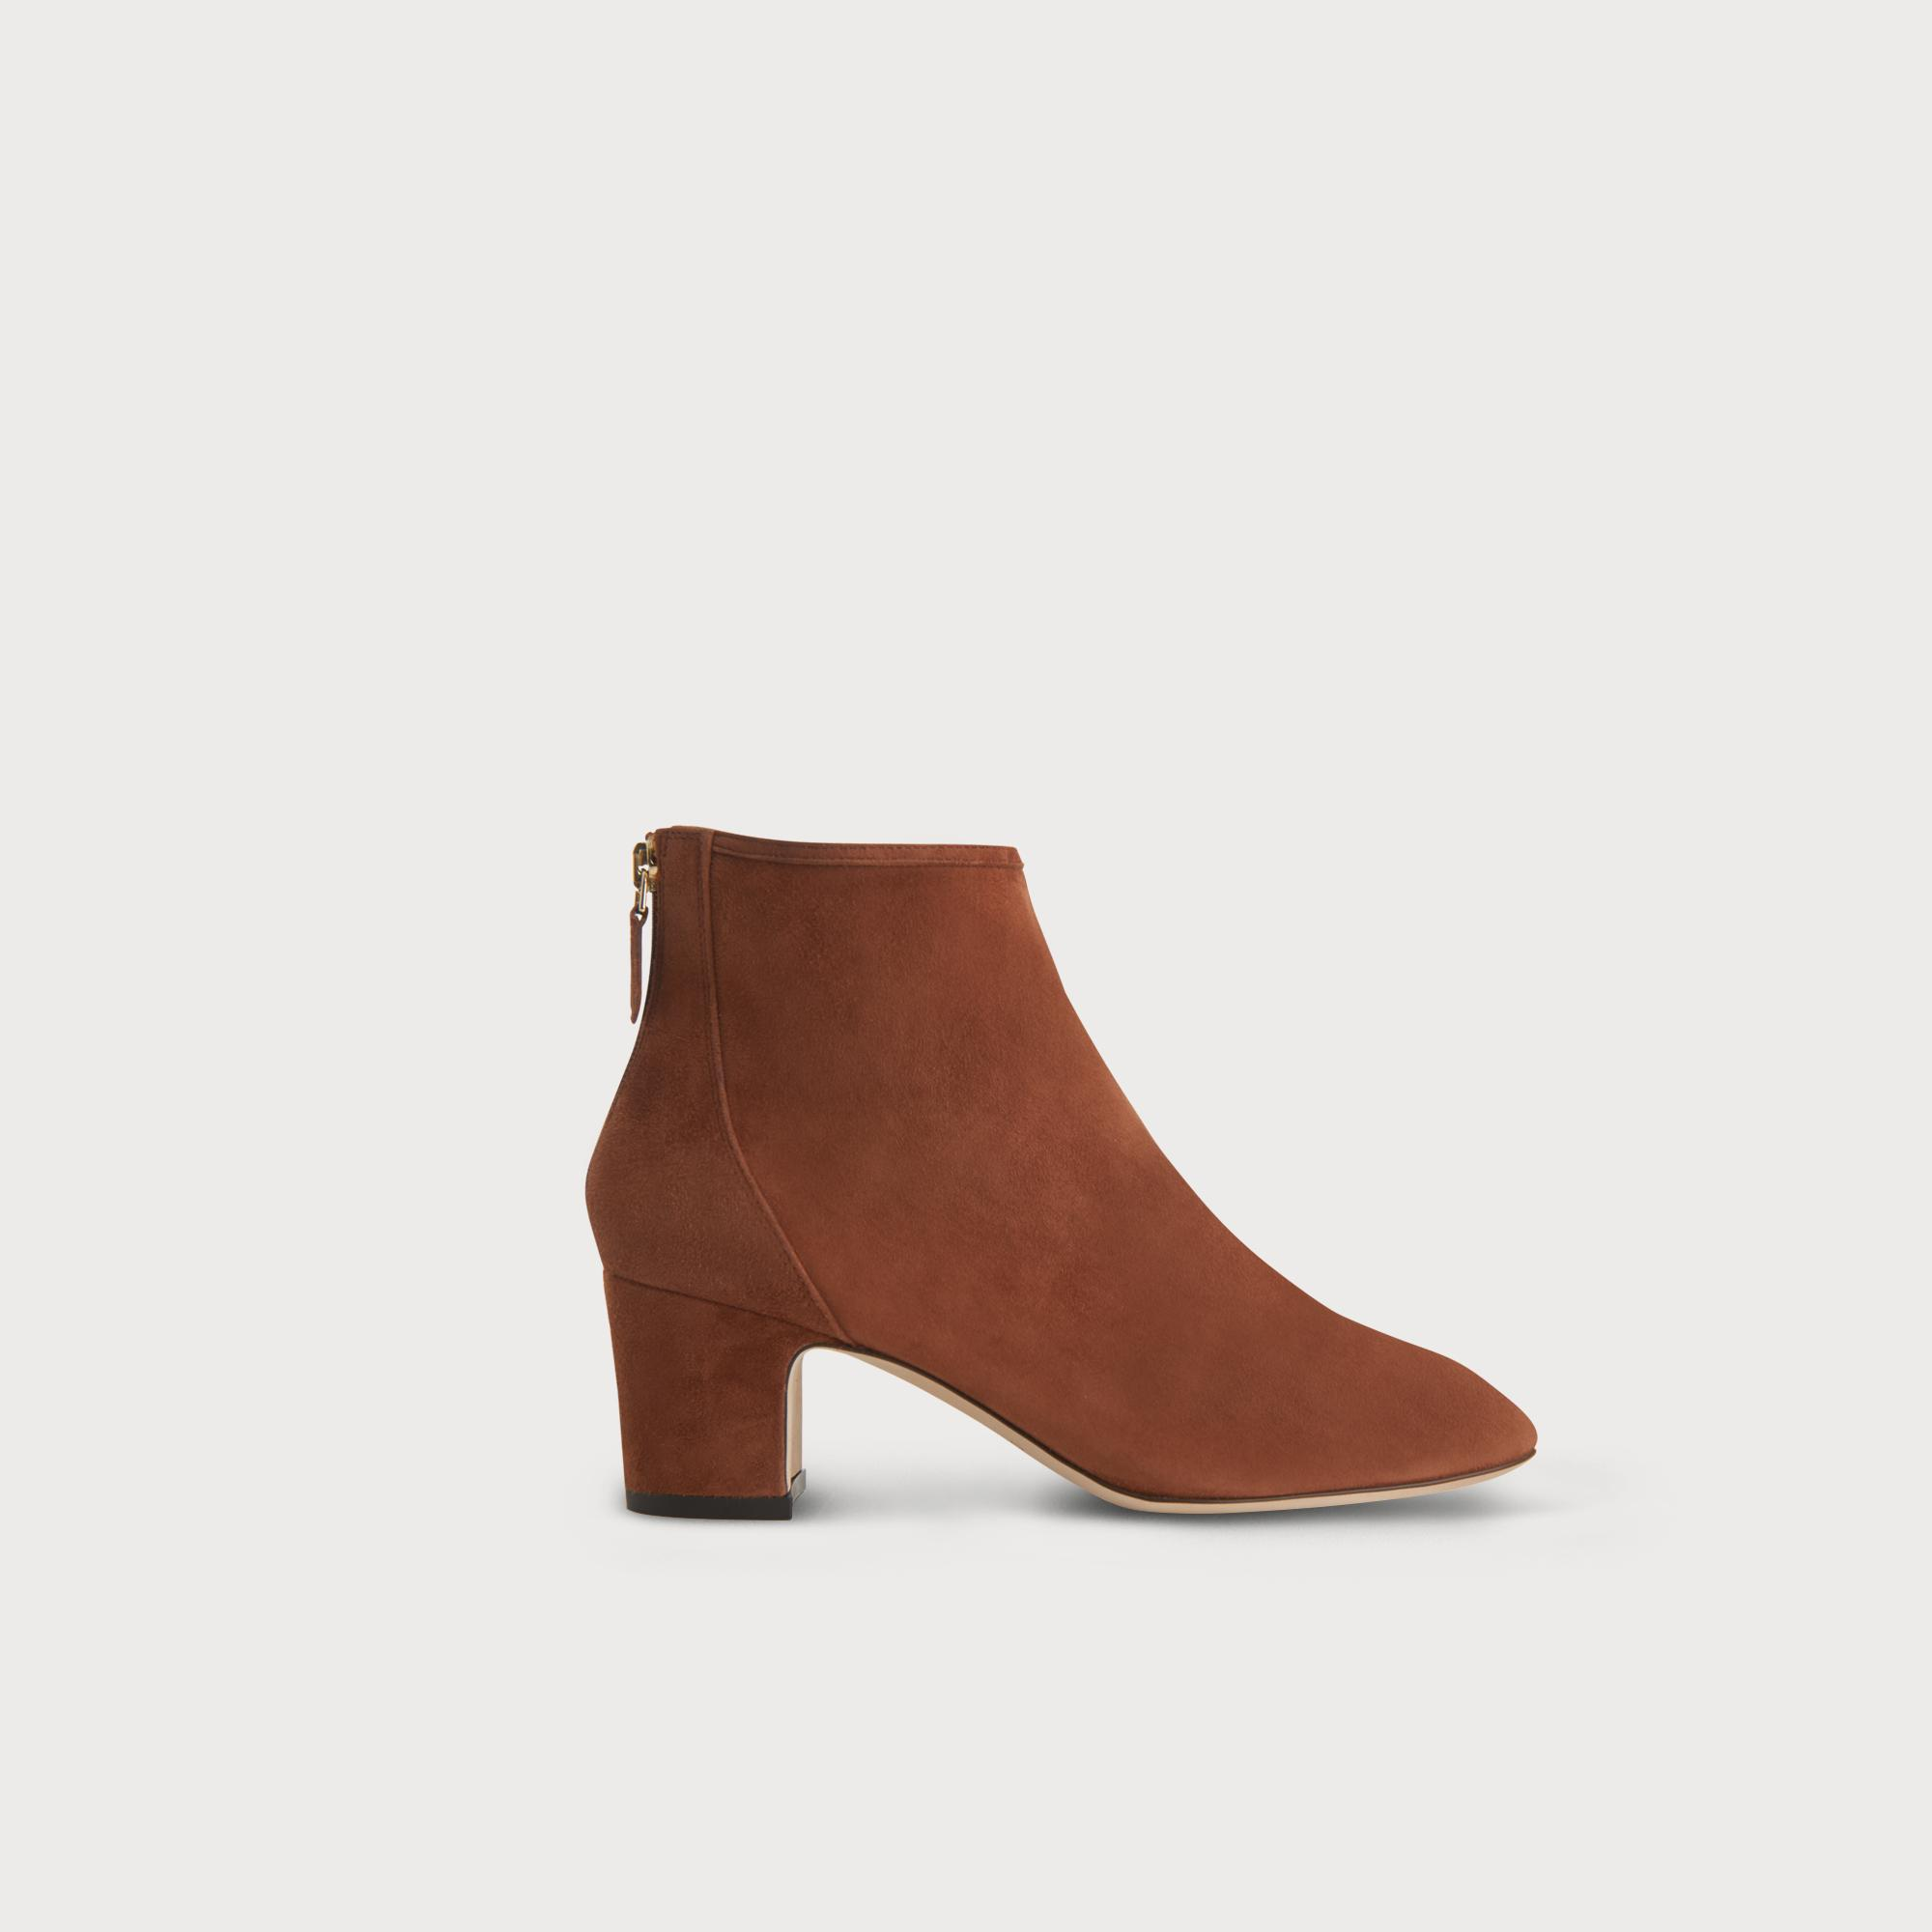 Alyss Brown Suede Ankle Boots